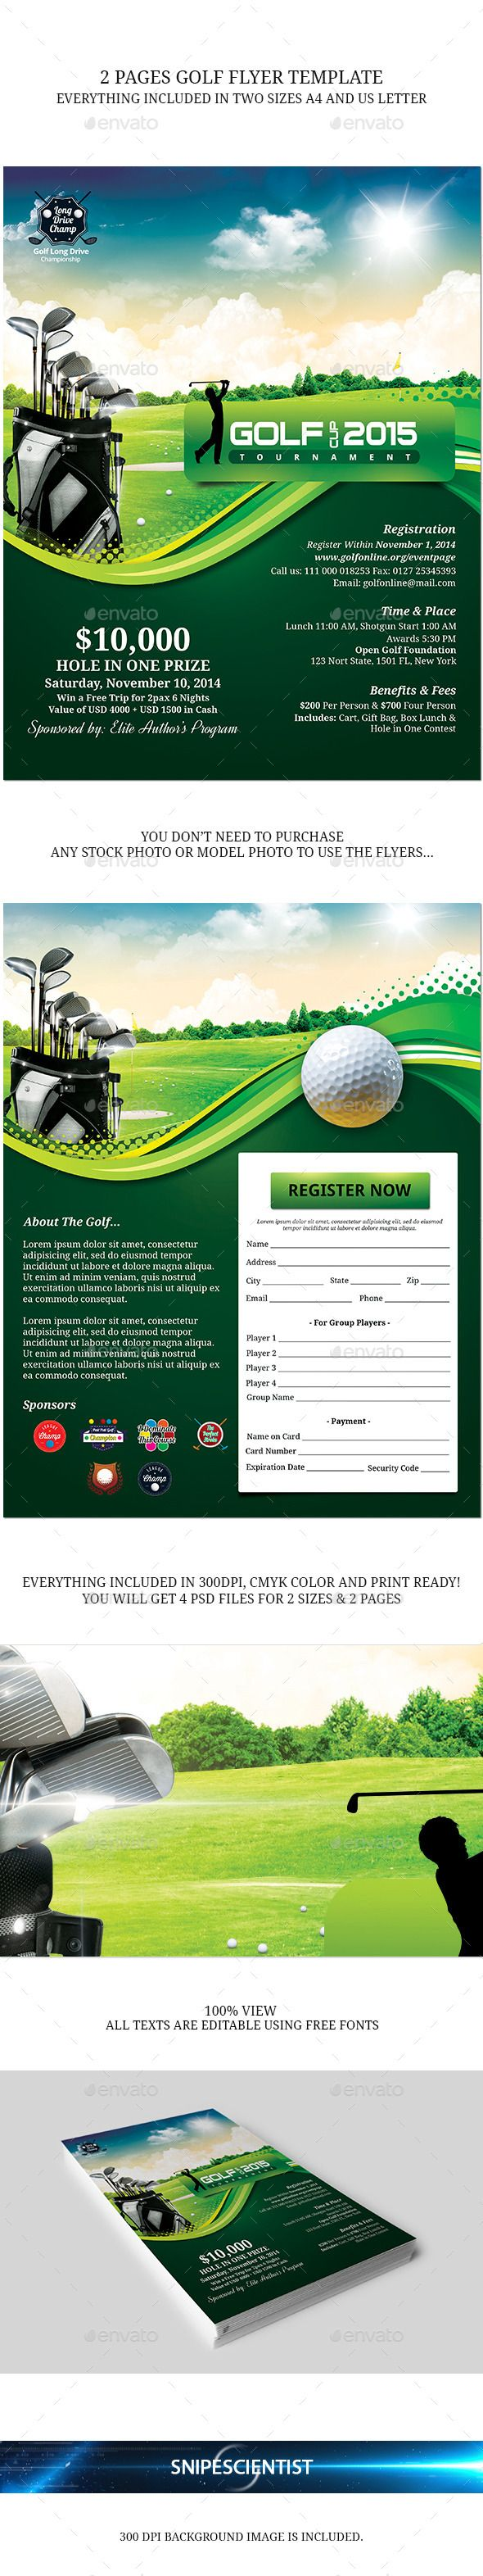 Golf Event Flyer Template PSD   Buy and Download: http://graphicriver.net/item/golf-event-flyer-template/9009854?WT.ac=category_thumb&WT.z_author=SNIPESCIENTIST&ref=ksioks